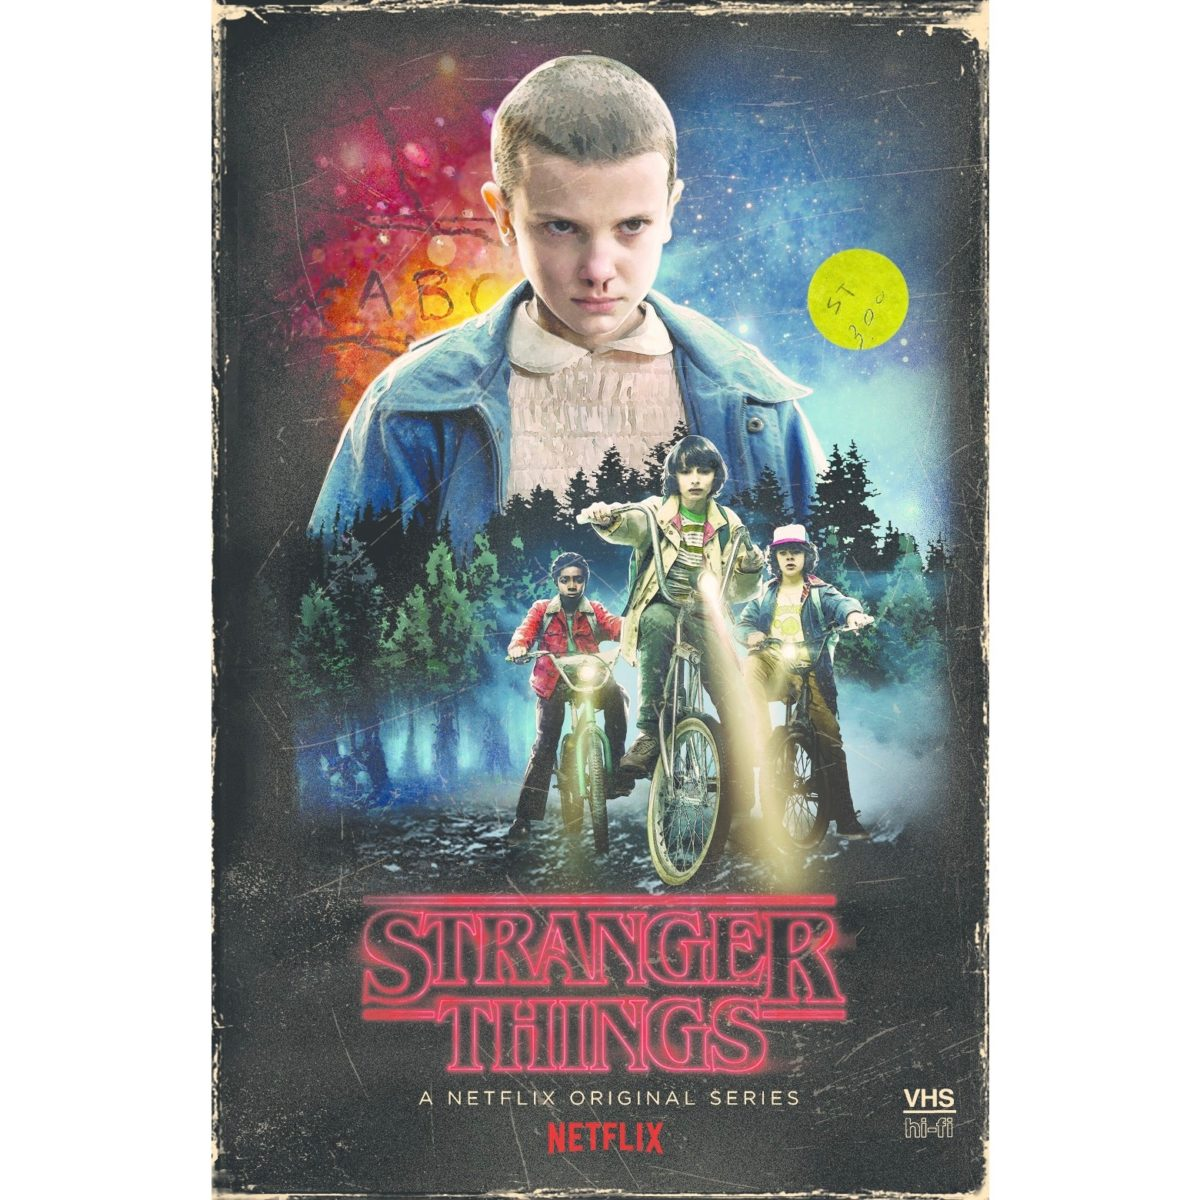 stranger things season 1 DVD bluray